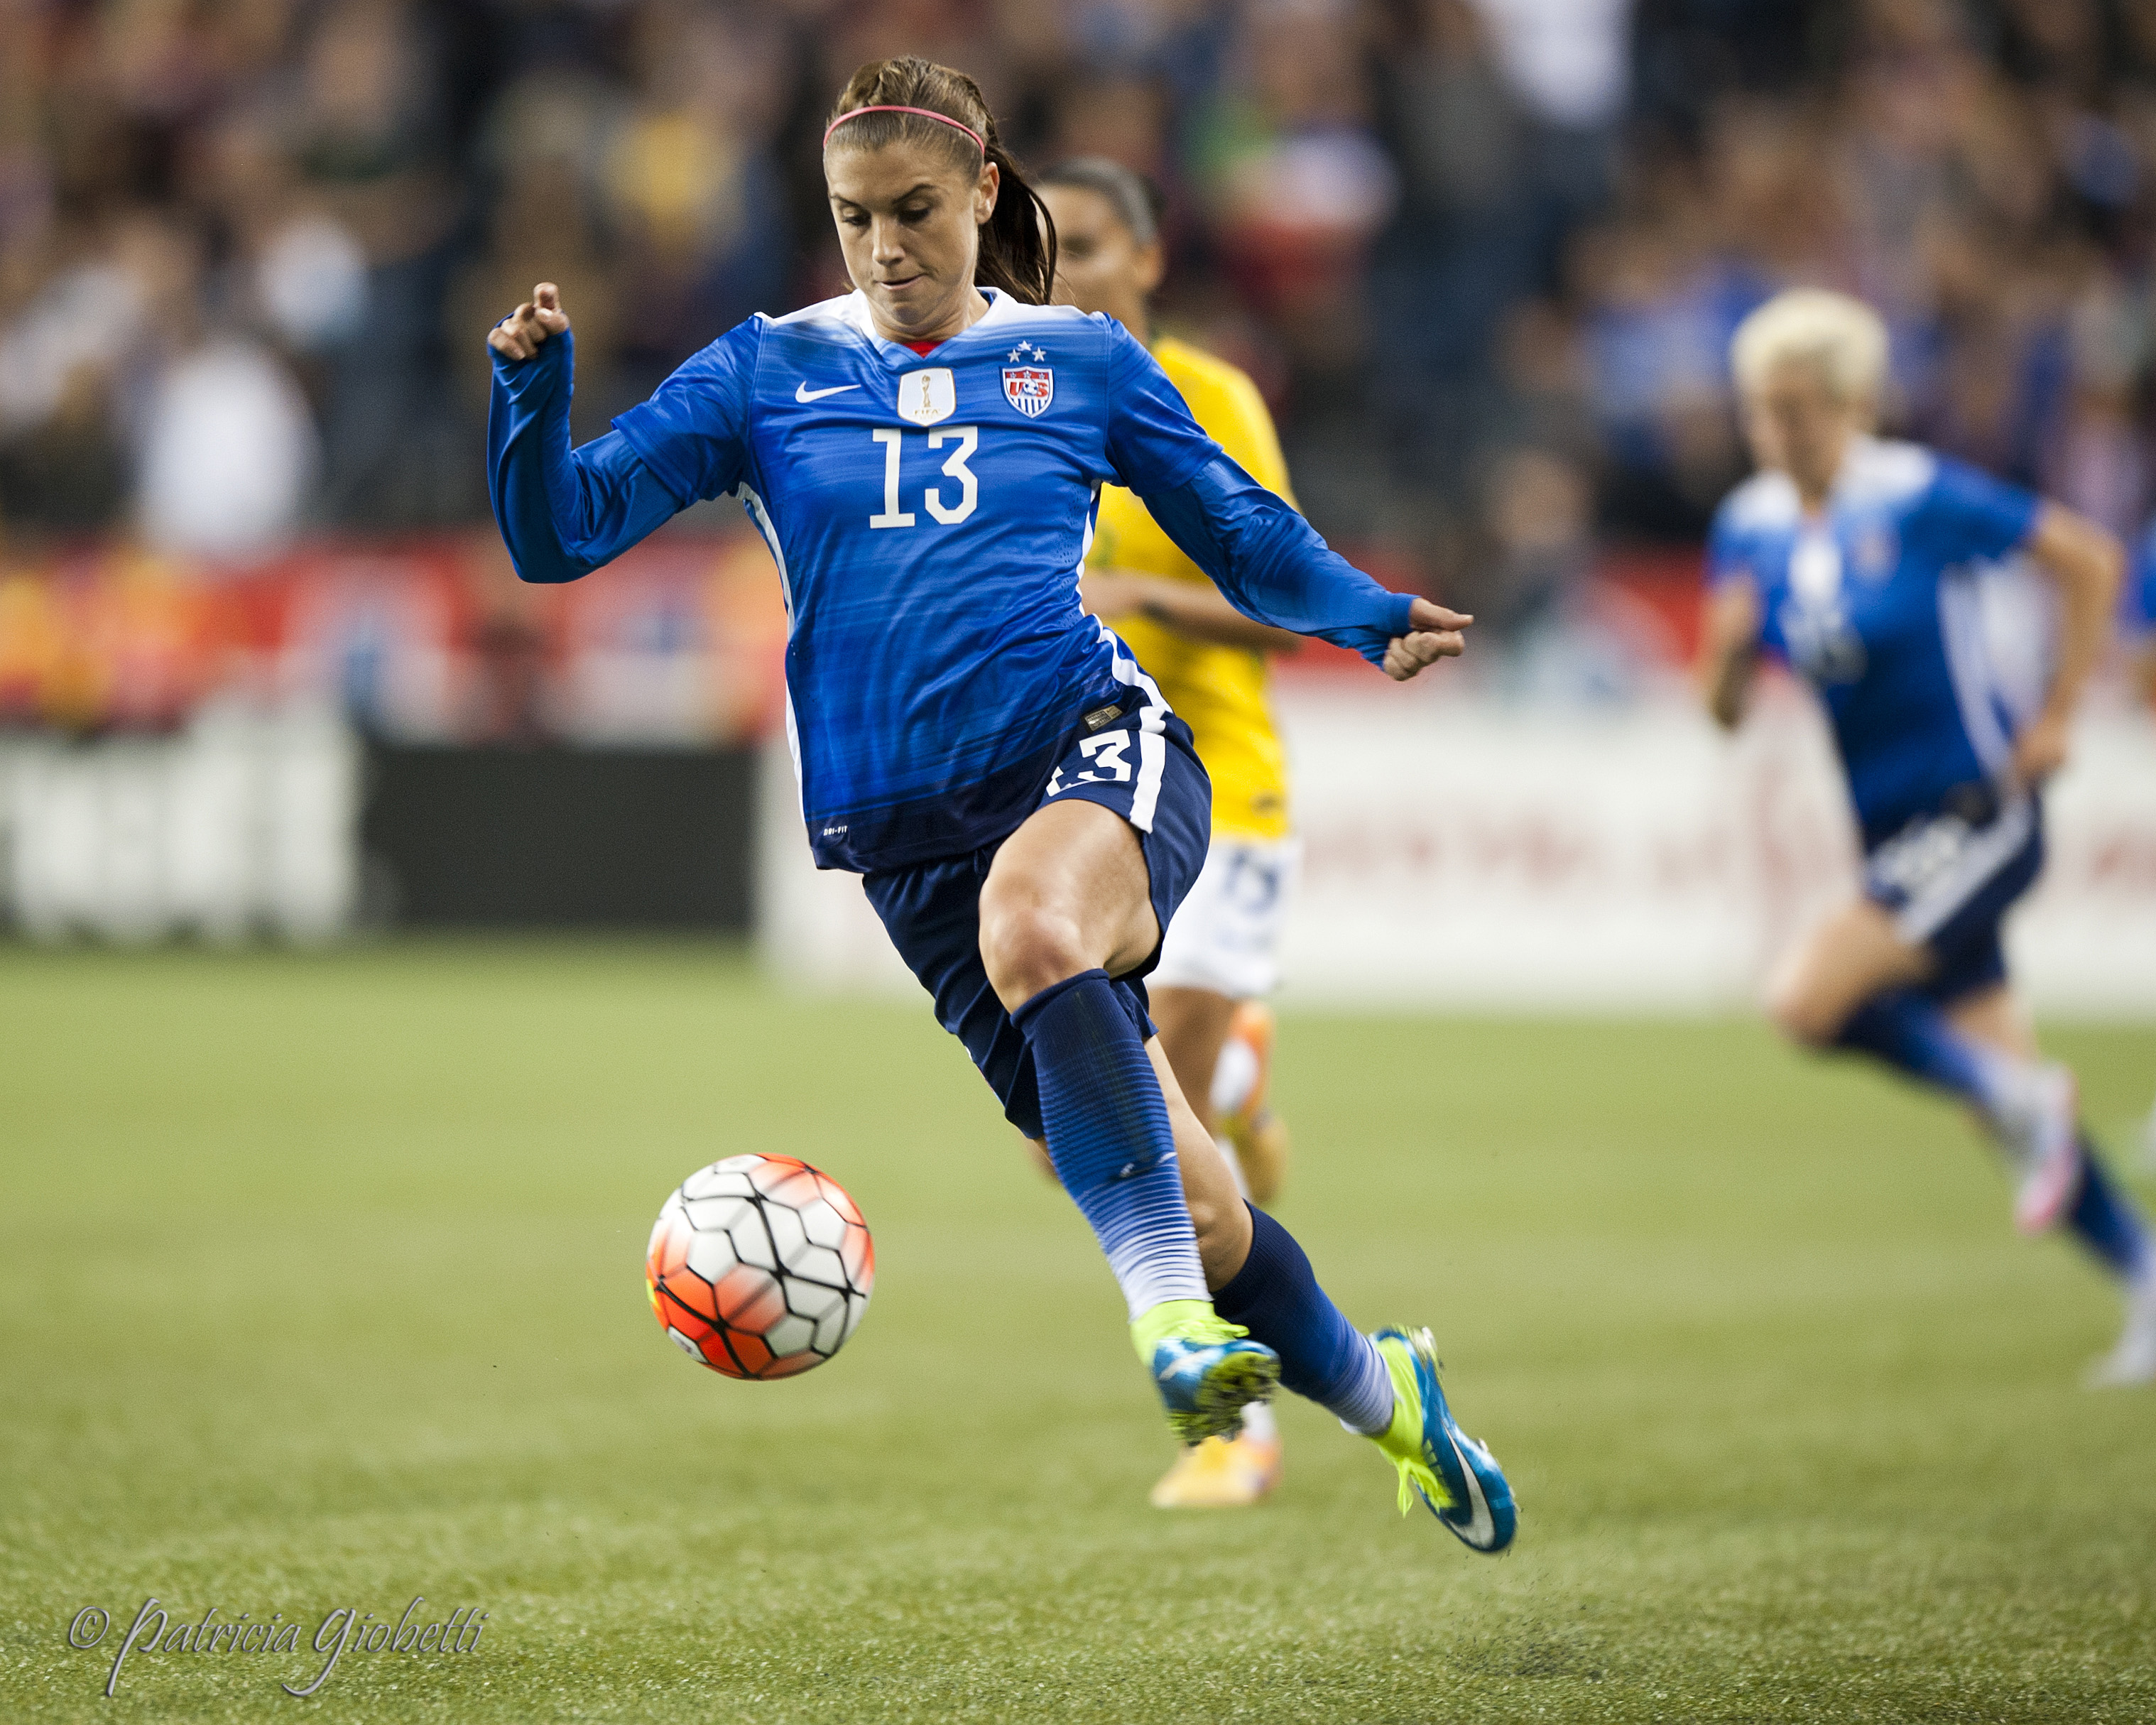 Alex-Morgan-soccer-39647049-3036-2429.jpg